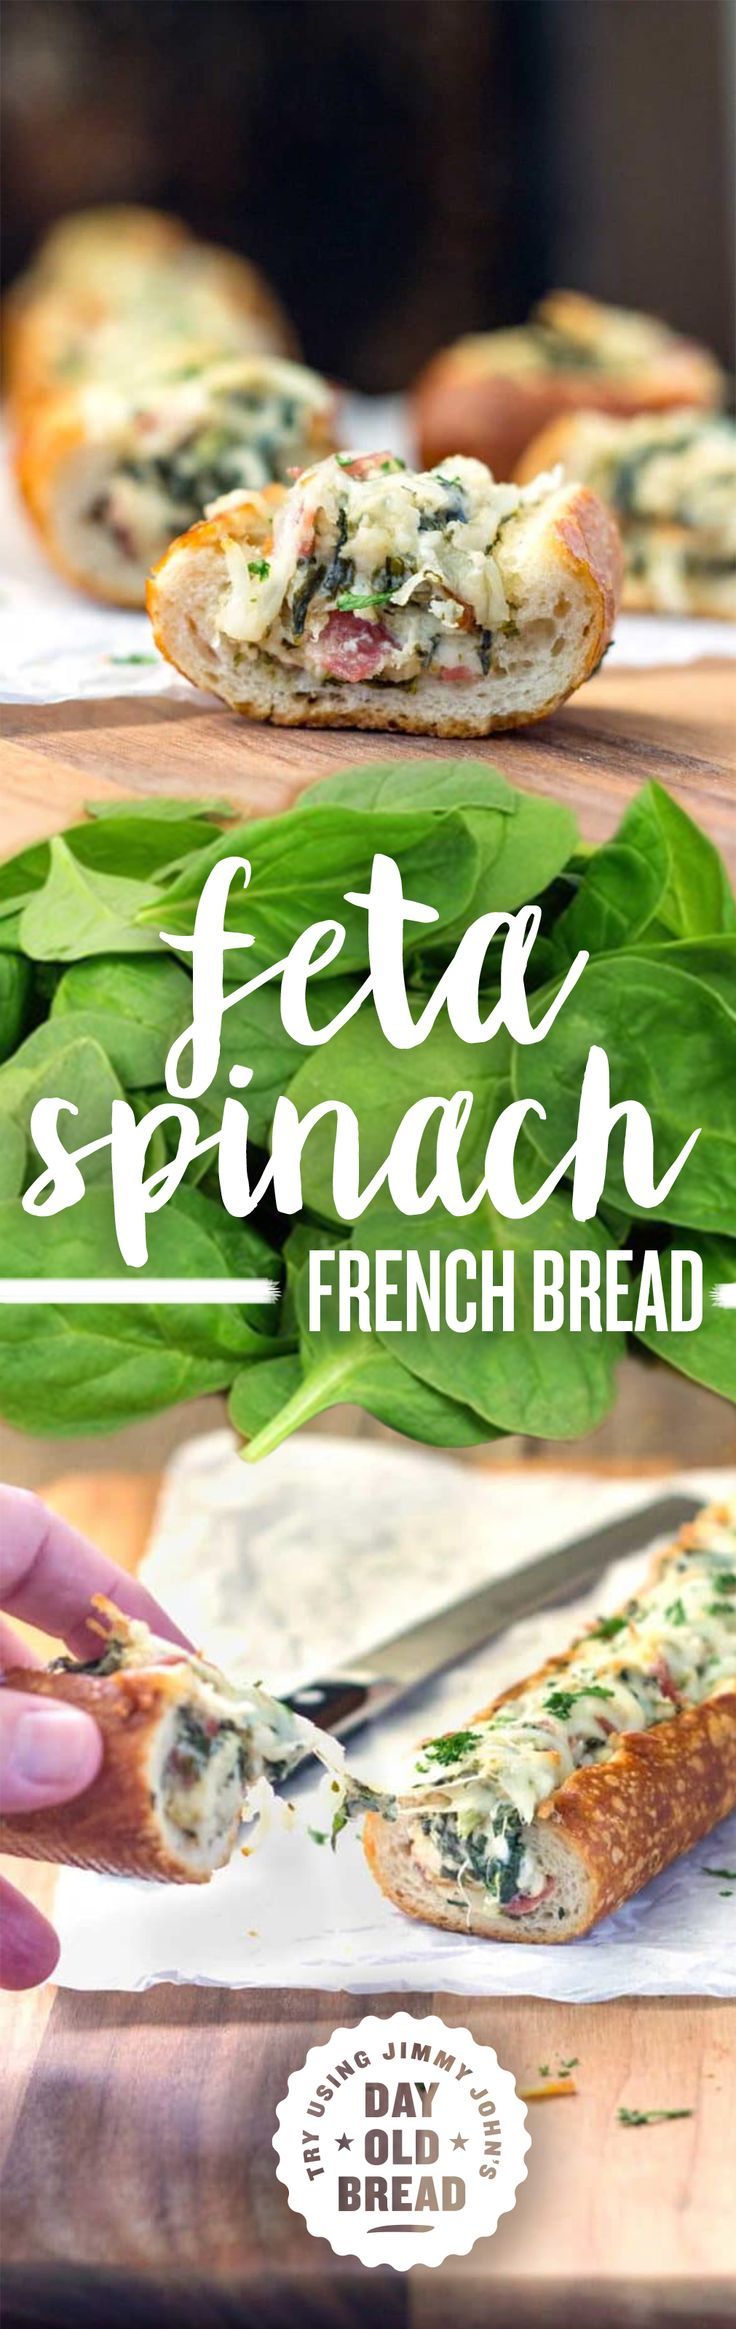 This easy, cheesy, creamy feta and spinach stuffed french bread is deliriously rich and tasty. Try making with Jimmy John's Day Old Bread for a yummy appetizer great for parties!